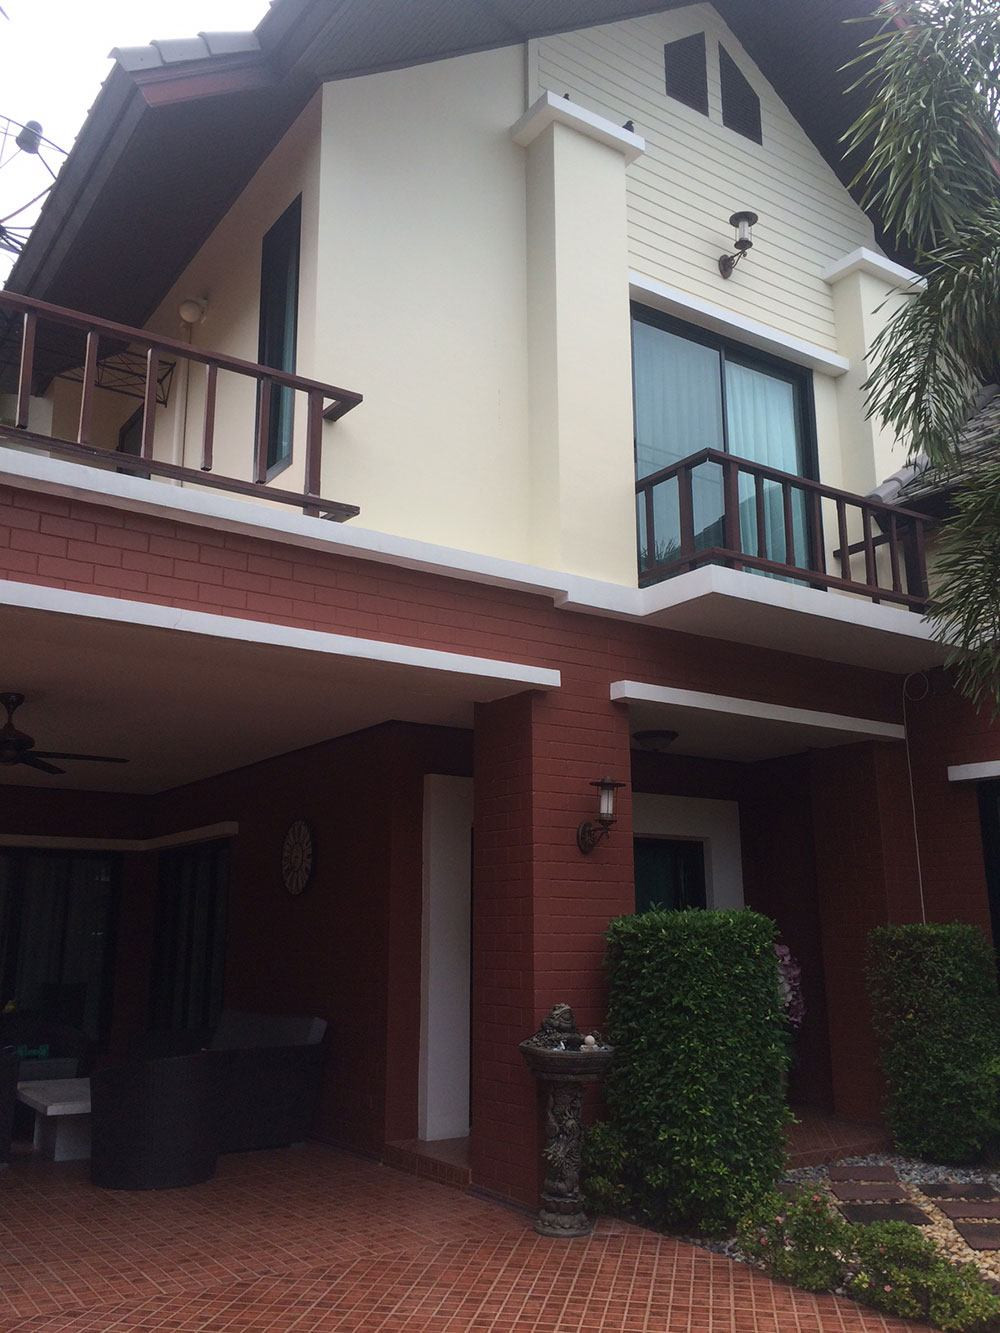 Best ideas about 3 Bedroom Homes For Rent . Save or Pin 3 Bedroom House Mantara Village · House · RH 7869 · For Now.